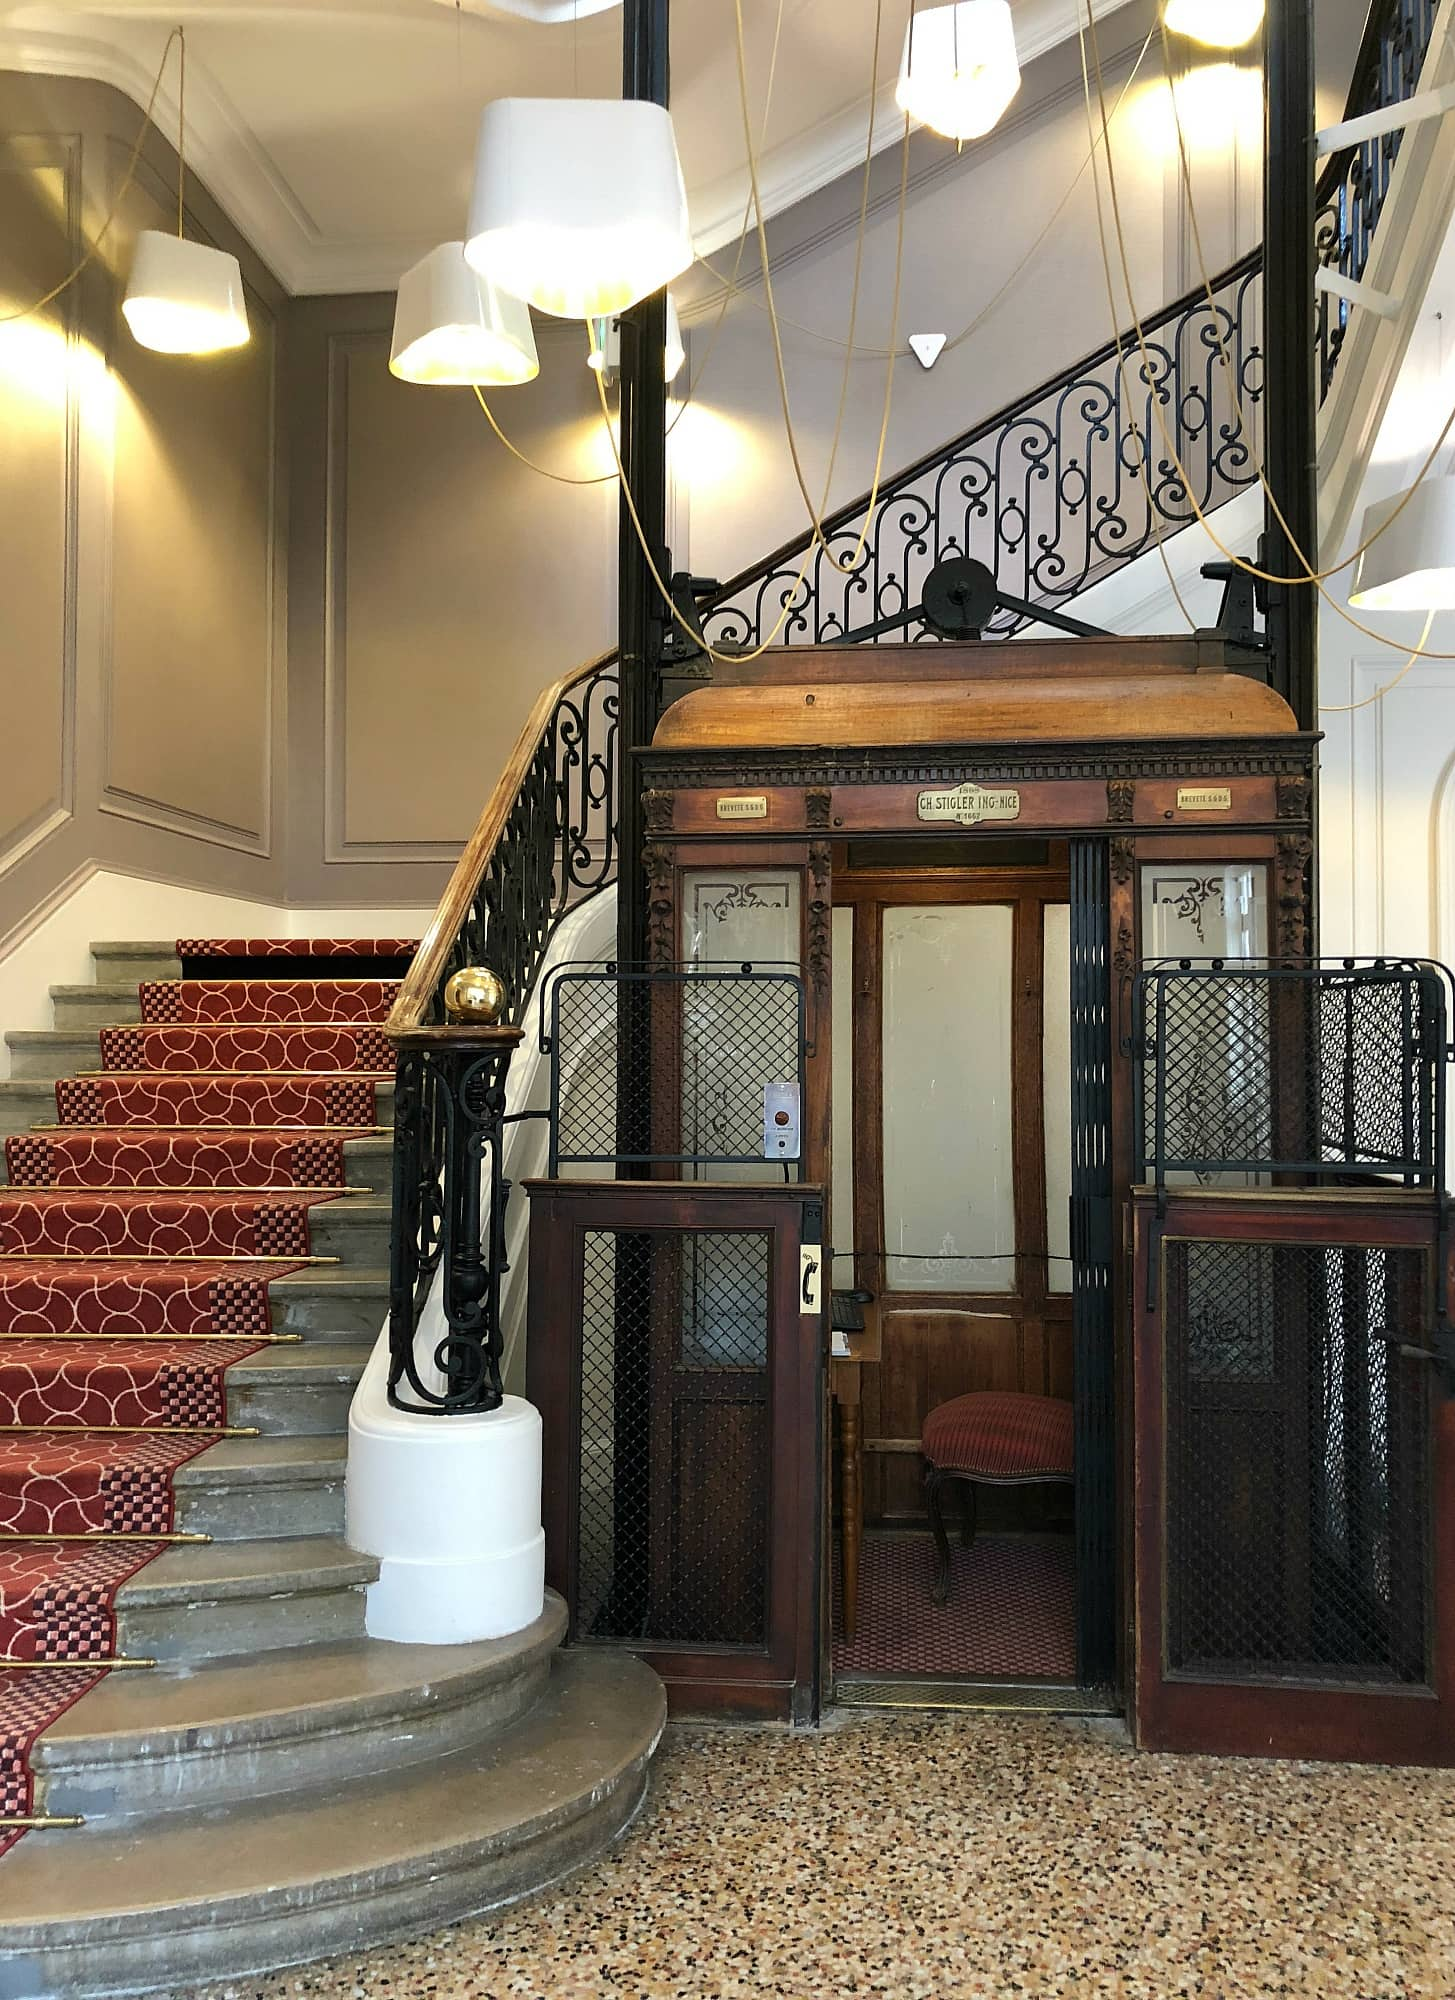 antique elevator at Oceania Le Metropole Montpellier